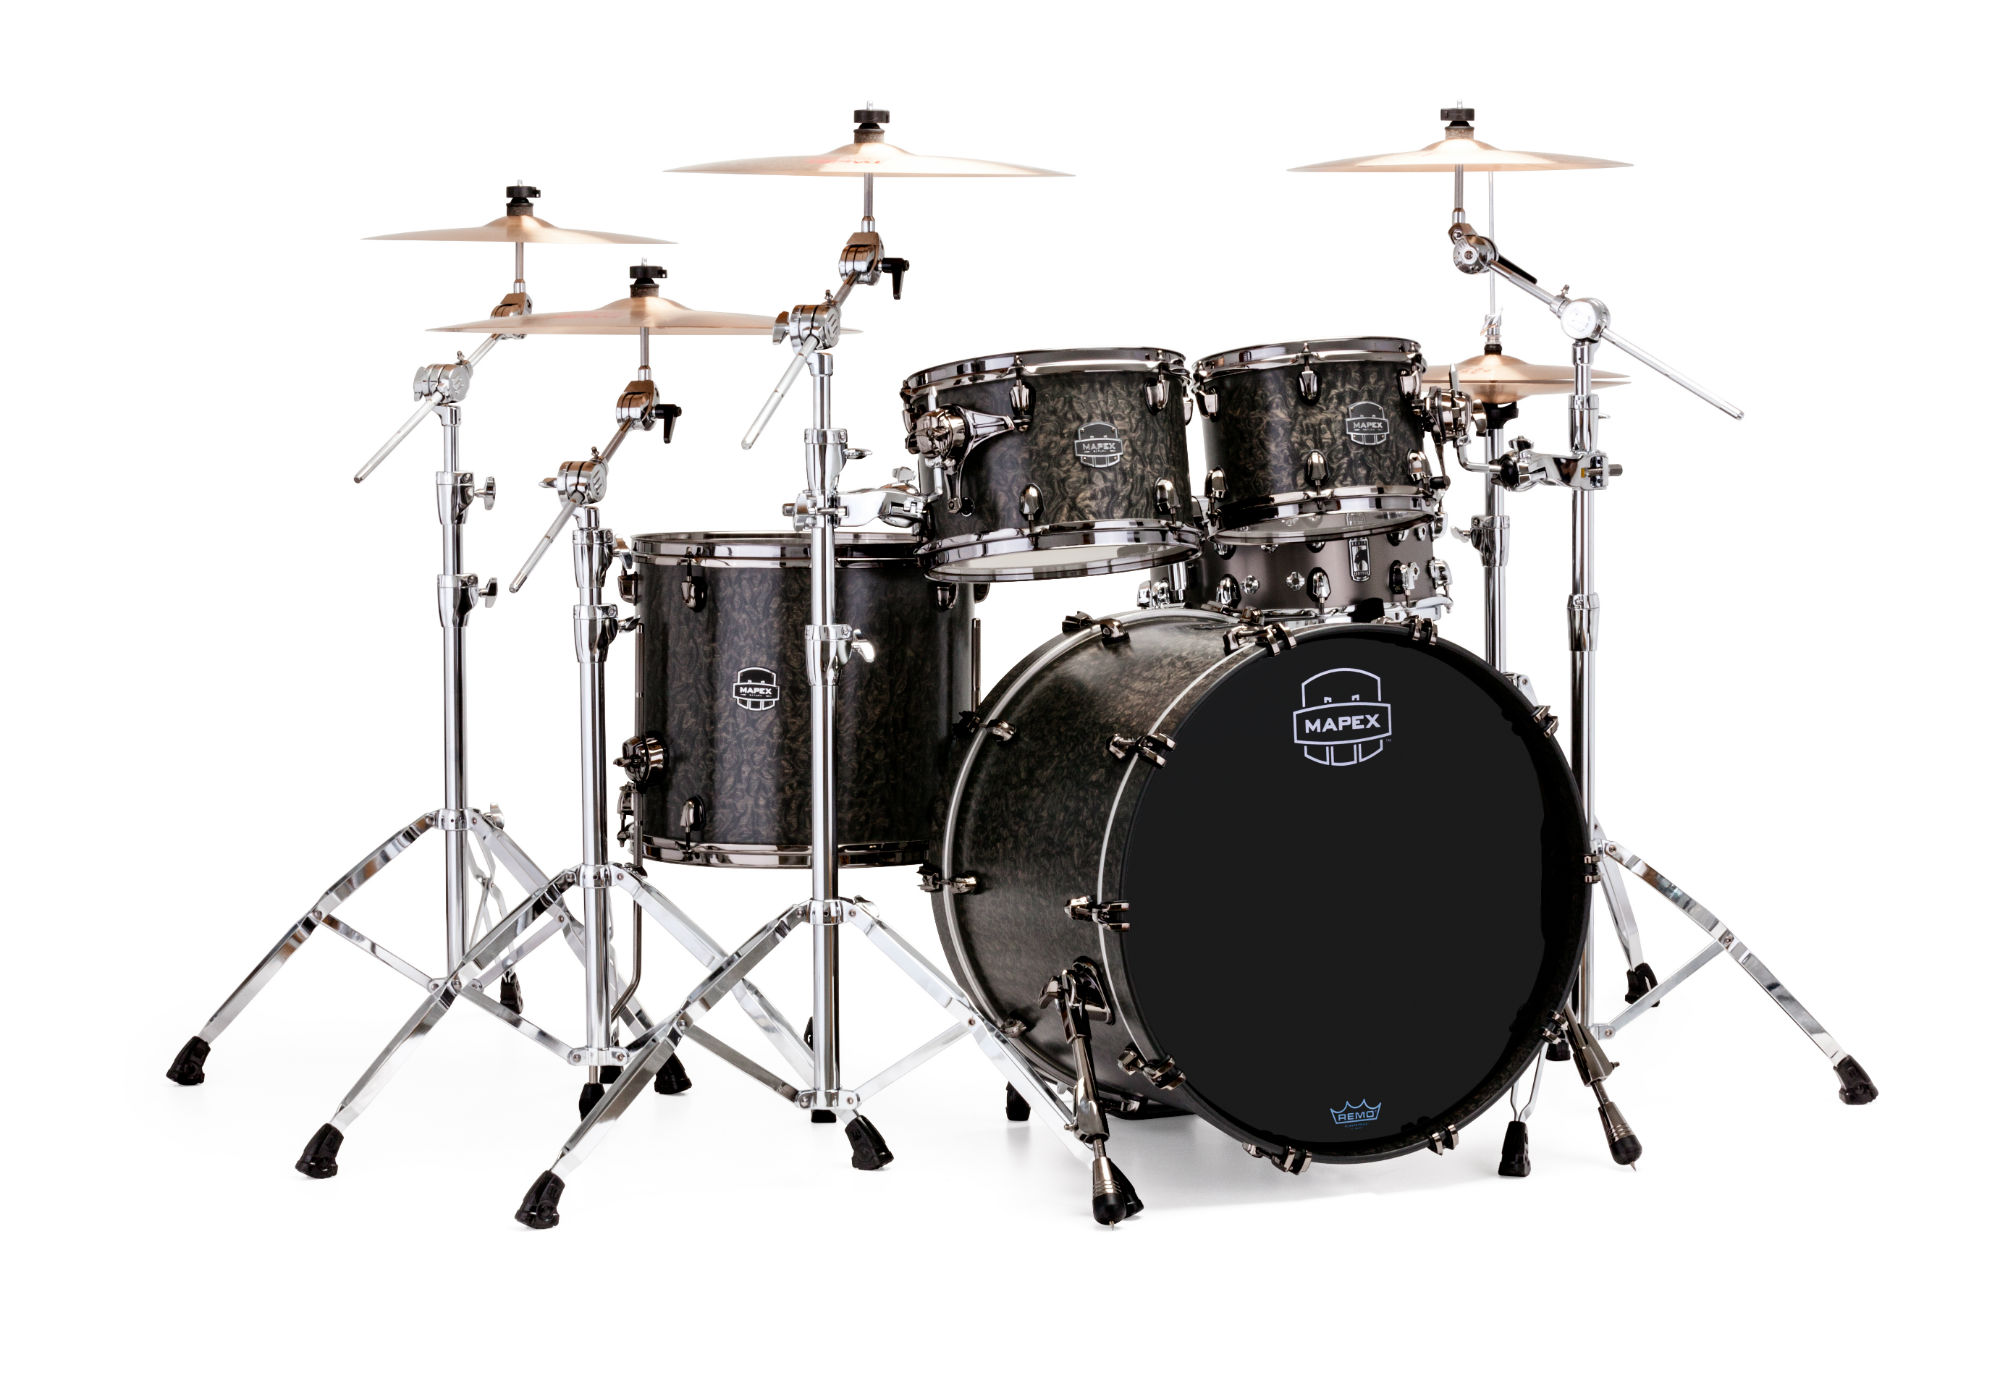 Mapex Saturn V MH Exotic Rock 4-piece shell pack with SONIClear Edge - SV504XBKFB - Satin Black Maple Burl